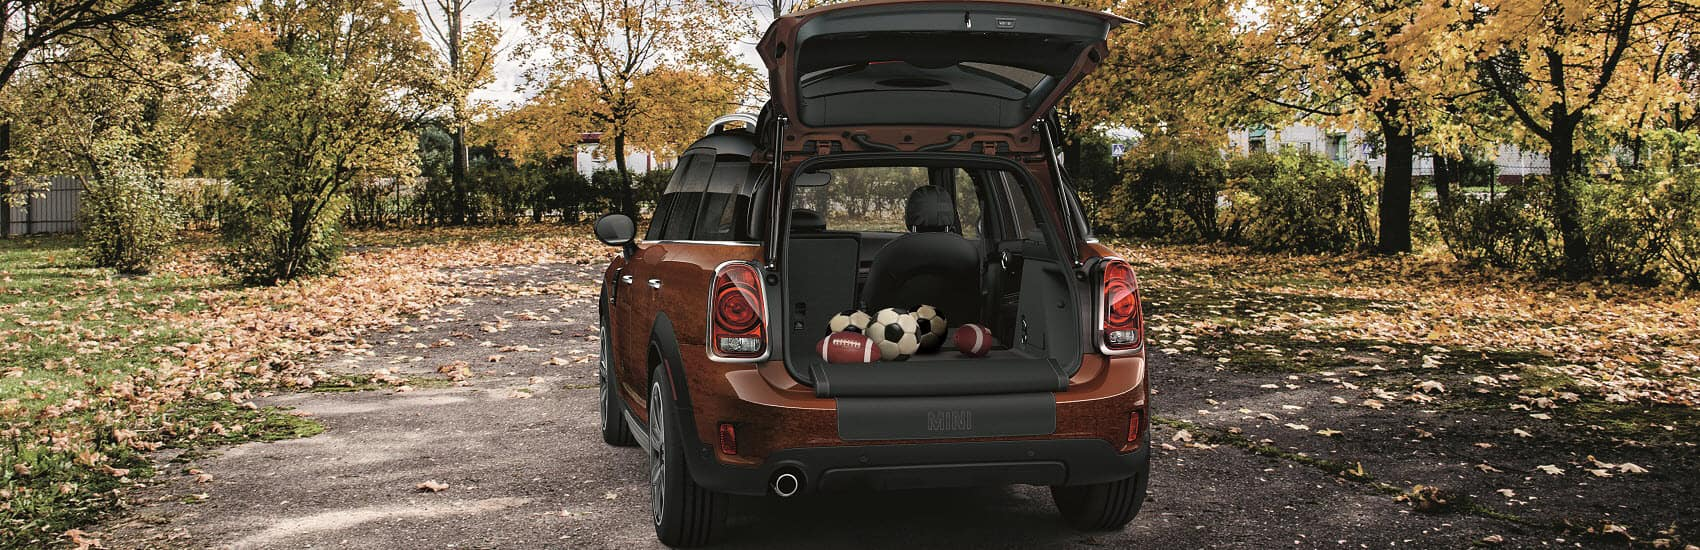 MINI Cooper Countryman Trunk Volume